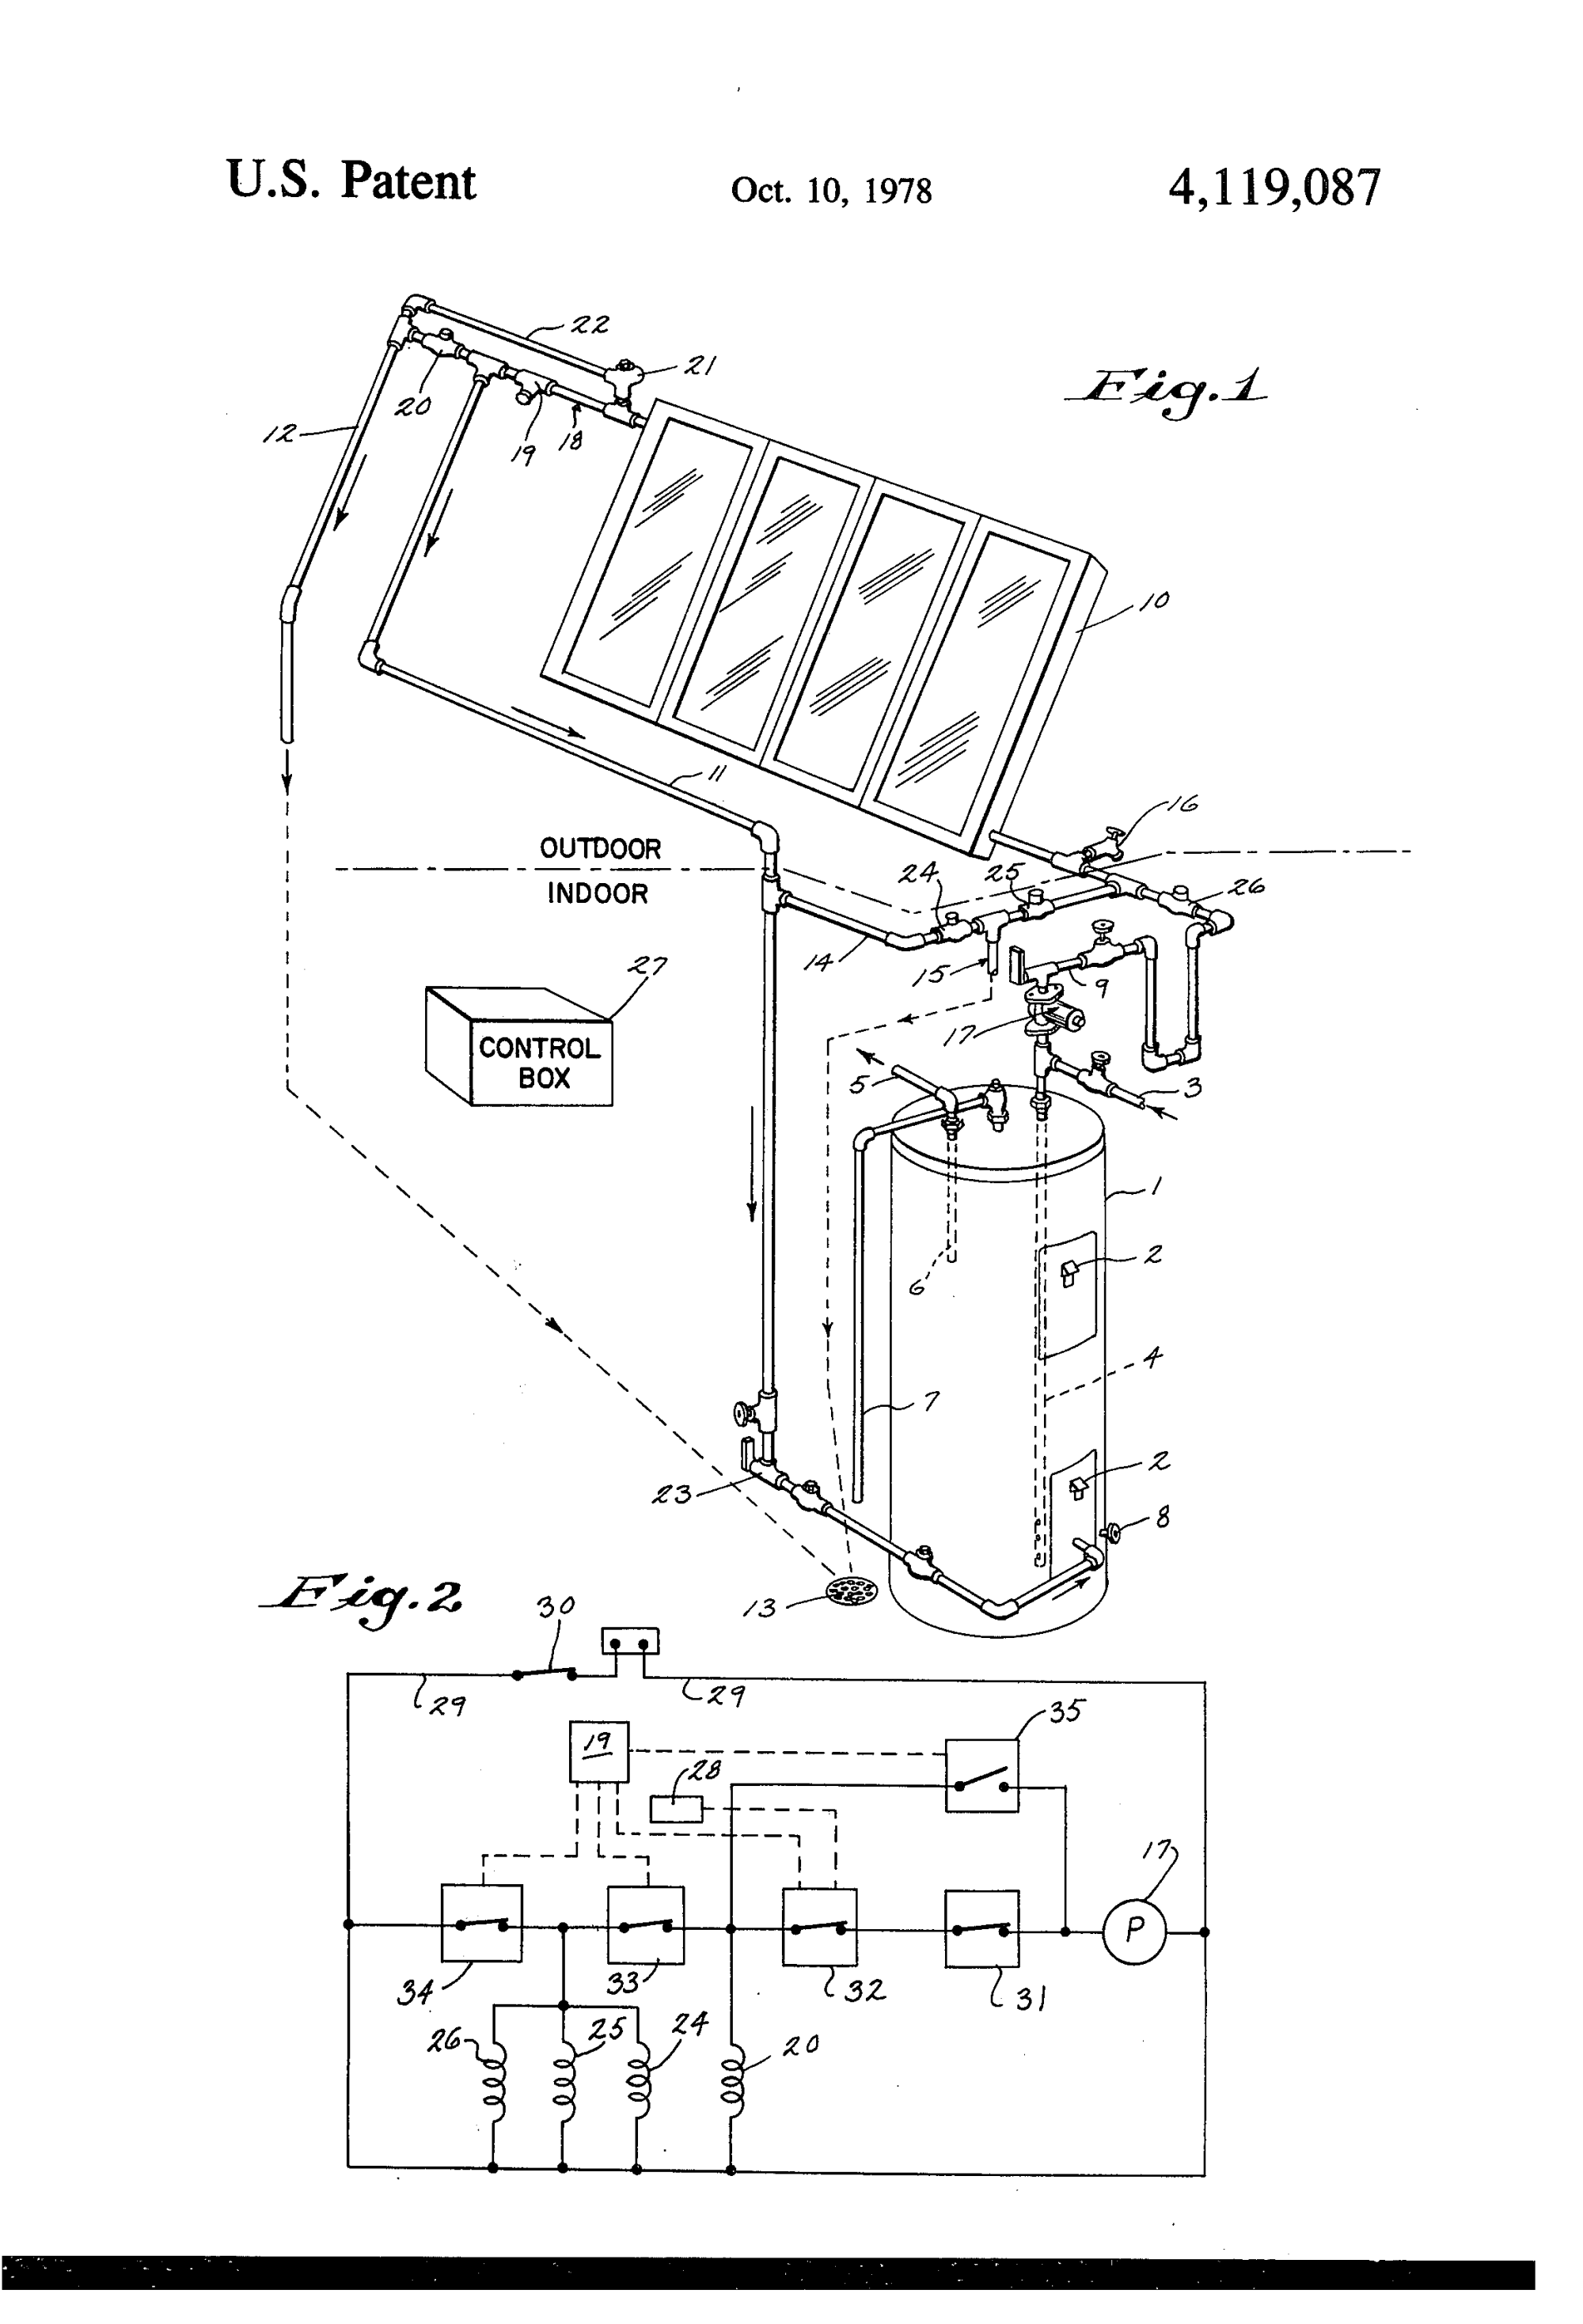 hight resolution of patent us4119087 solar water heating system google patents system google patents on wiring solar panels in series and parallel